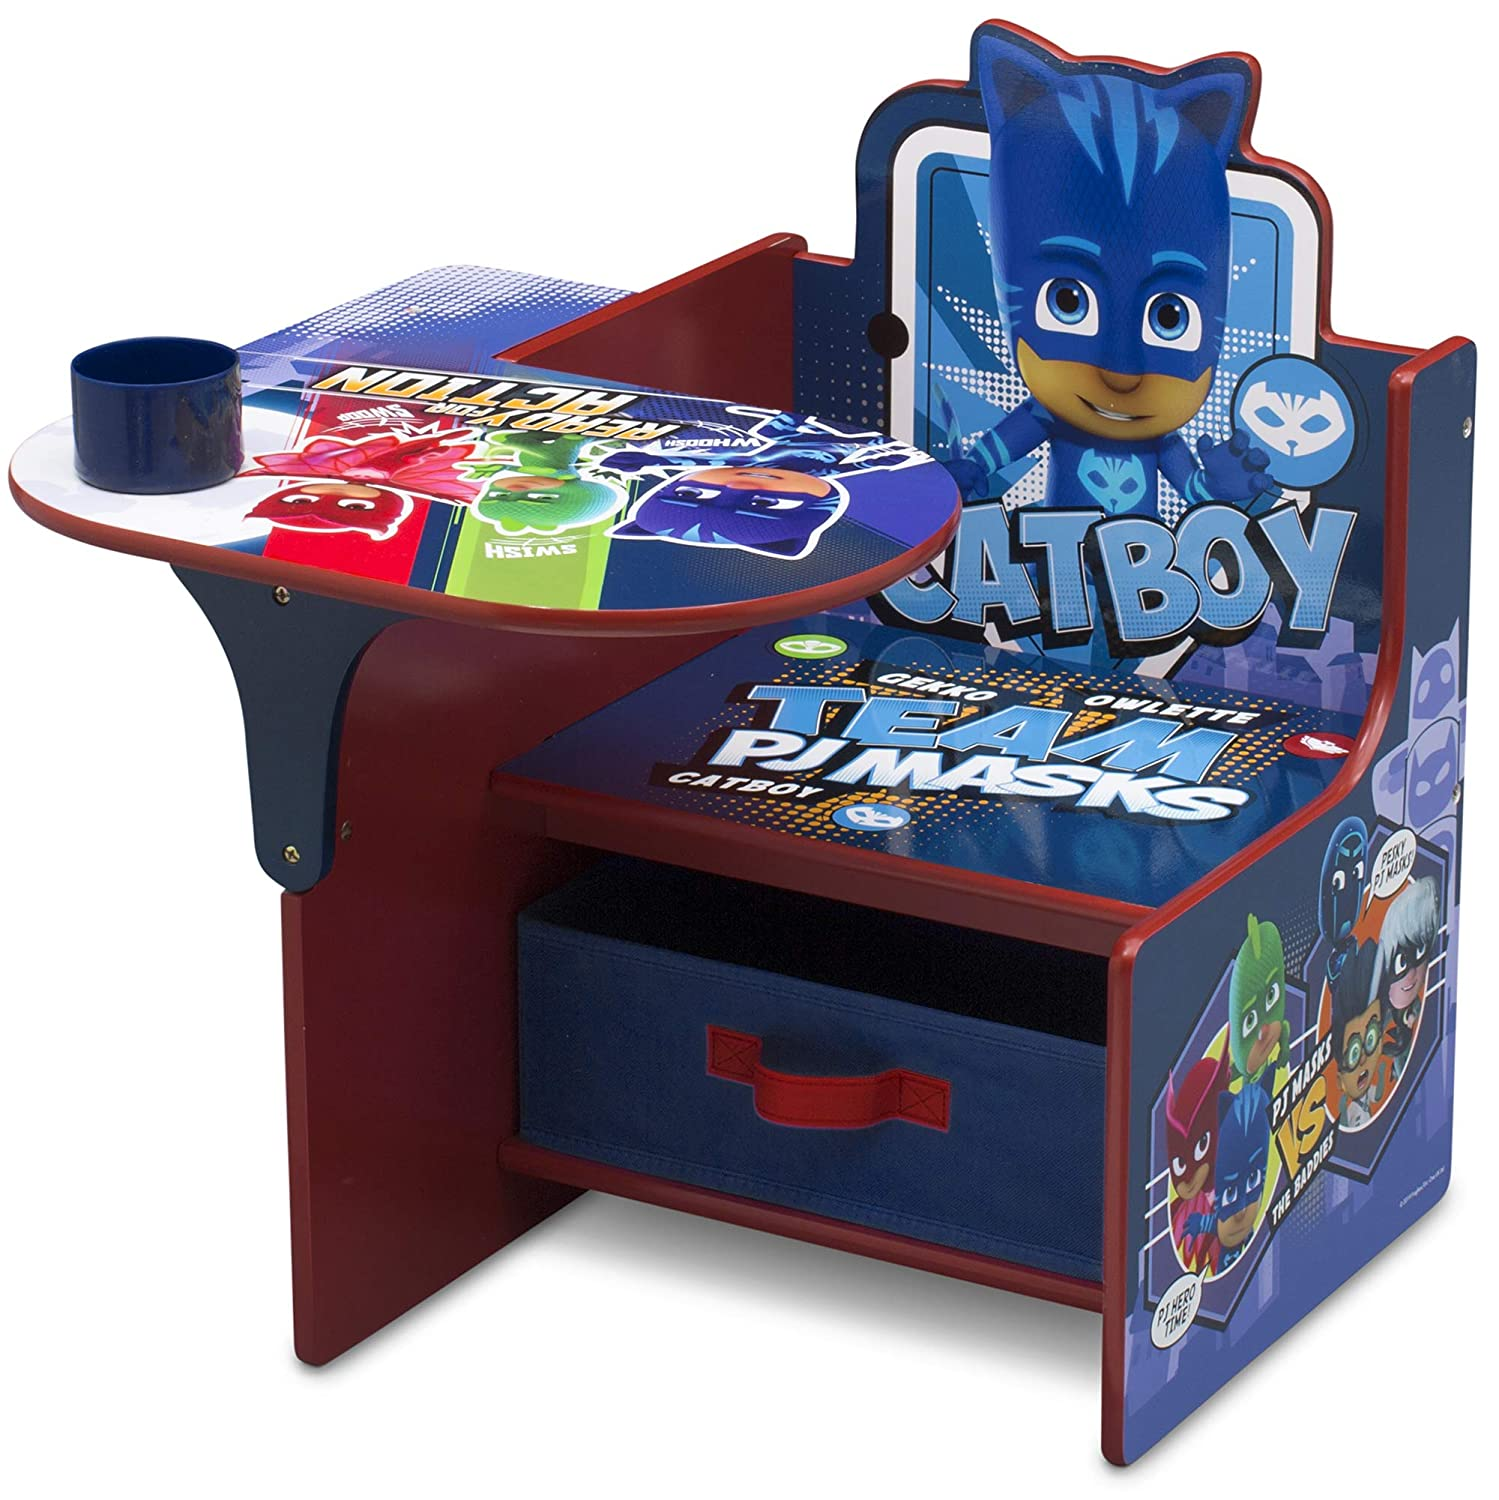 Delta Children Chair Desk with Storage Bin, PJ Masks, Blue